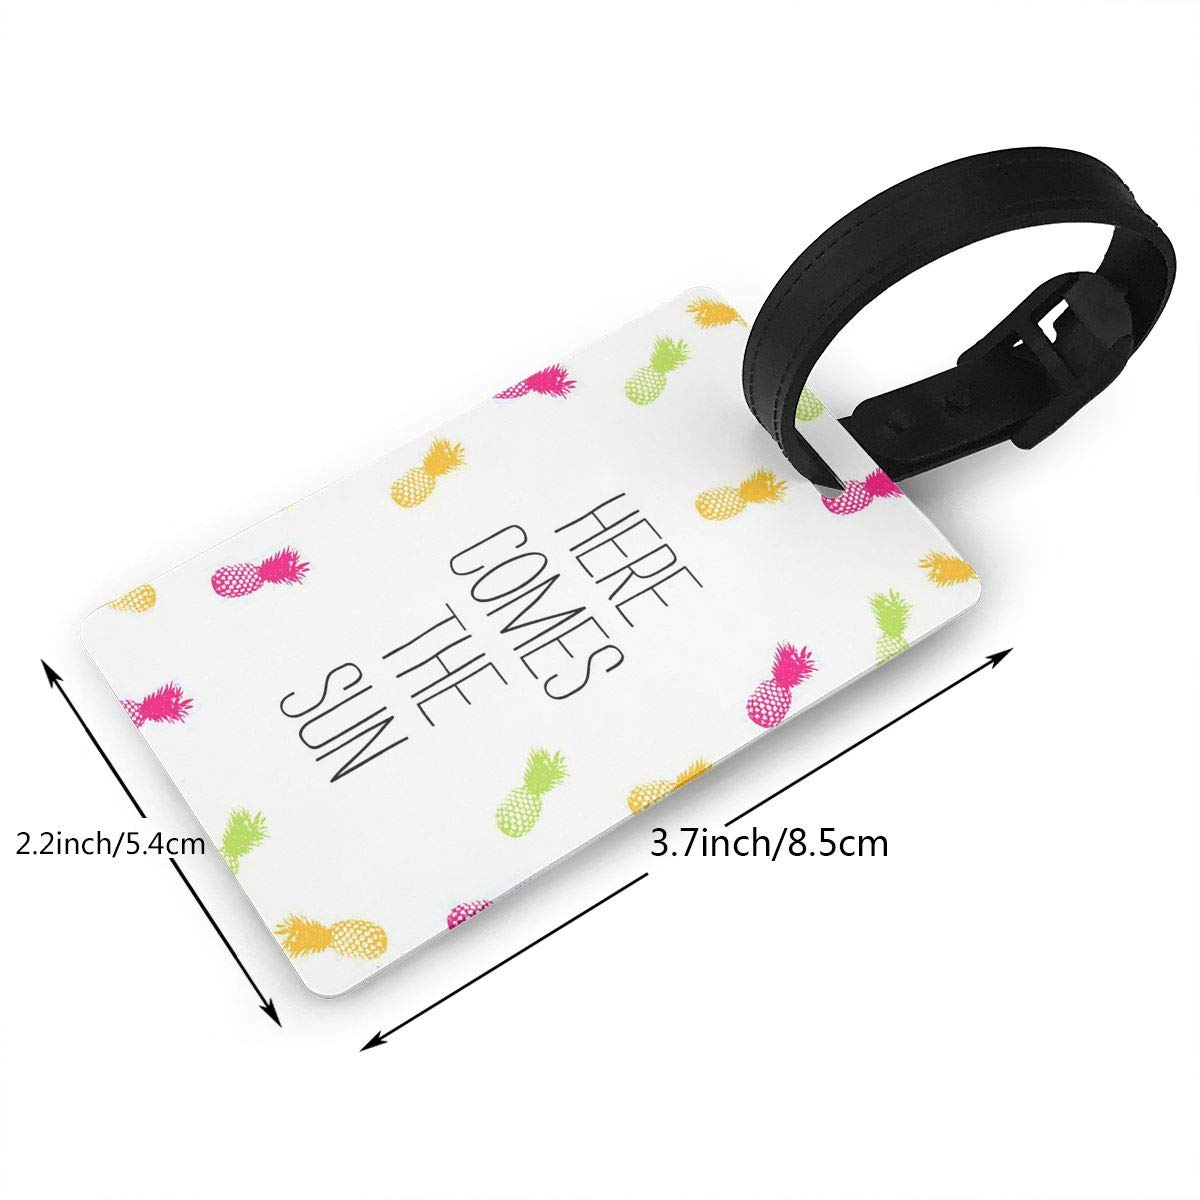 Pineapple Travel Tags For Travel Tags Accessories 2 Pack Luggage Tags